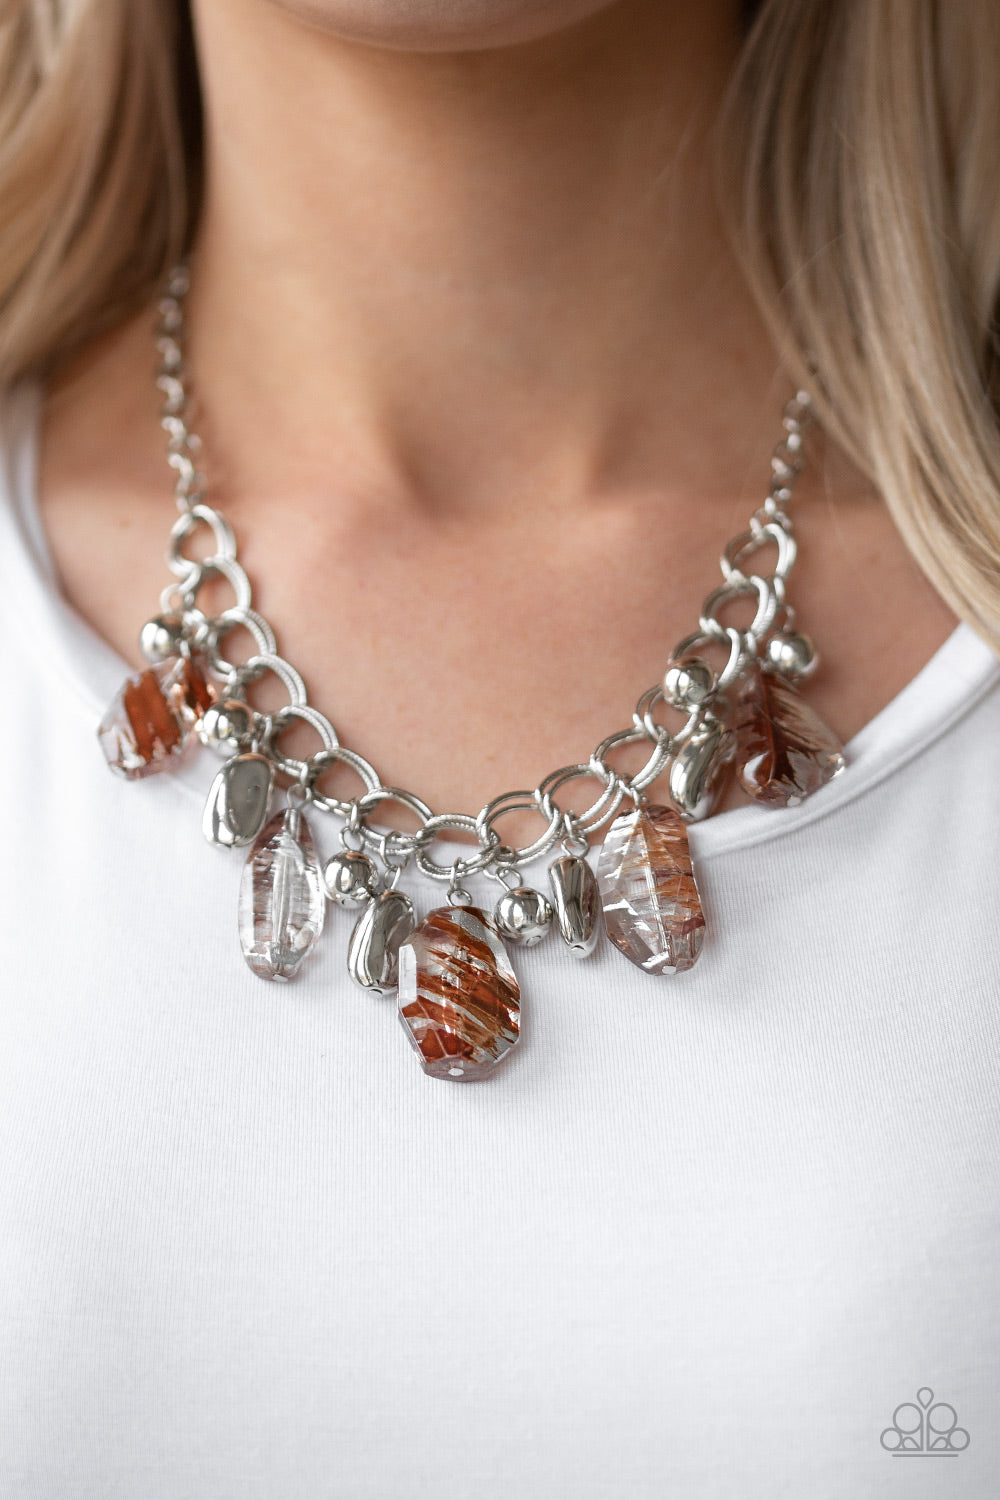 Chroma Drama Brown Paparazzi Necklace - JewelTonez Jewelry